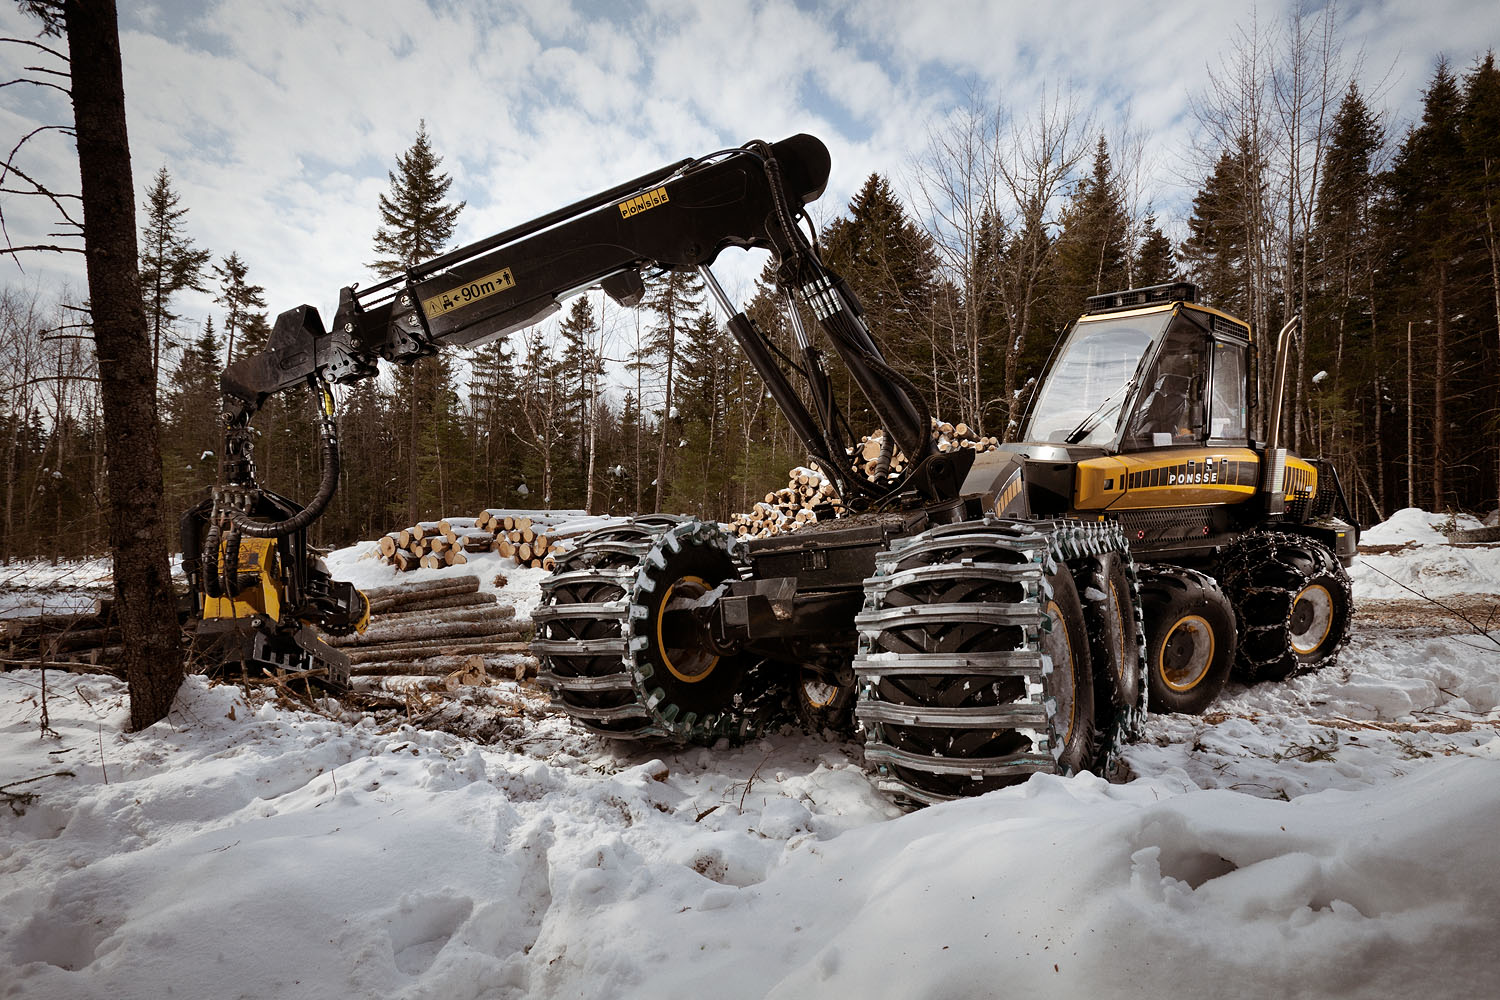 This behemoth and futuristic logging machine makes quick work of the forest, and can drive over the most unruly terrain.